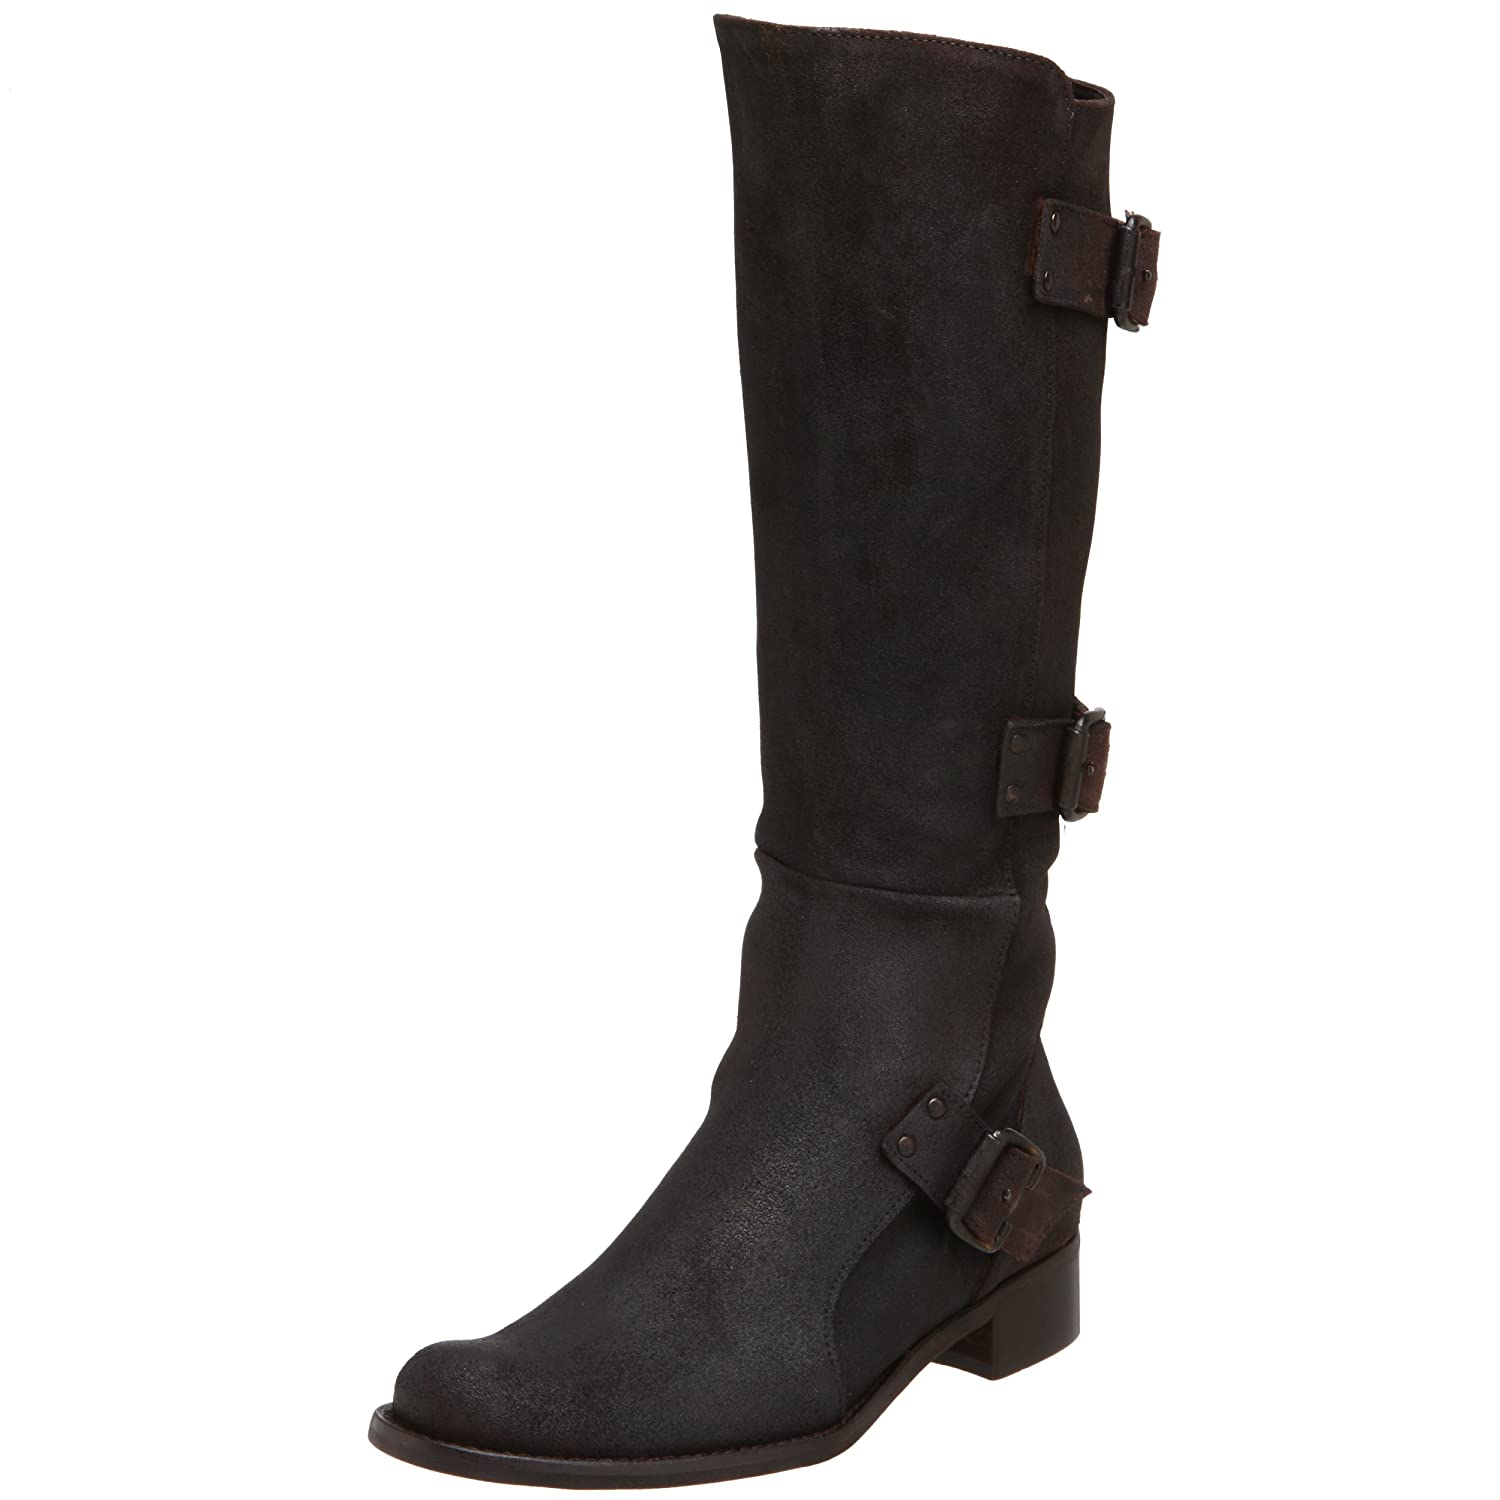 Charles David Women's Persue Boot - Free Overnight Shipping & Return Shipping: Endless.com from endless.com